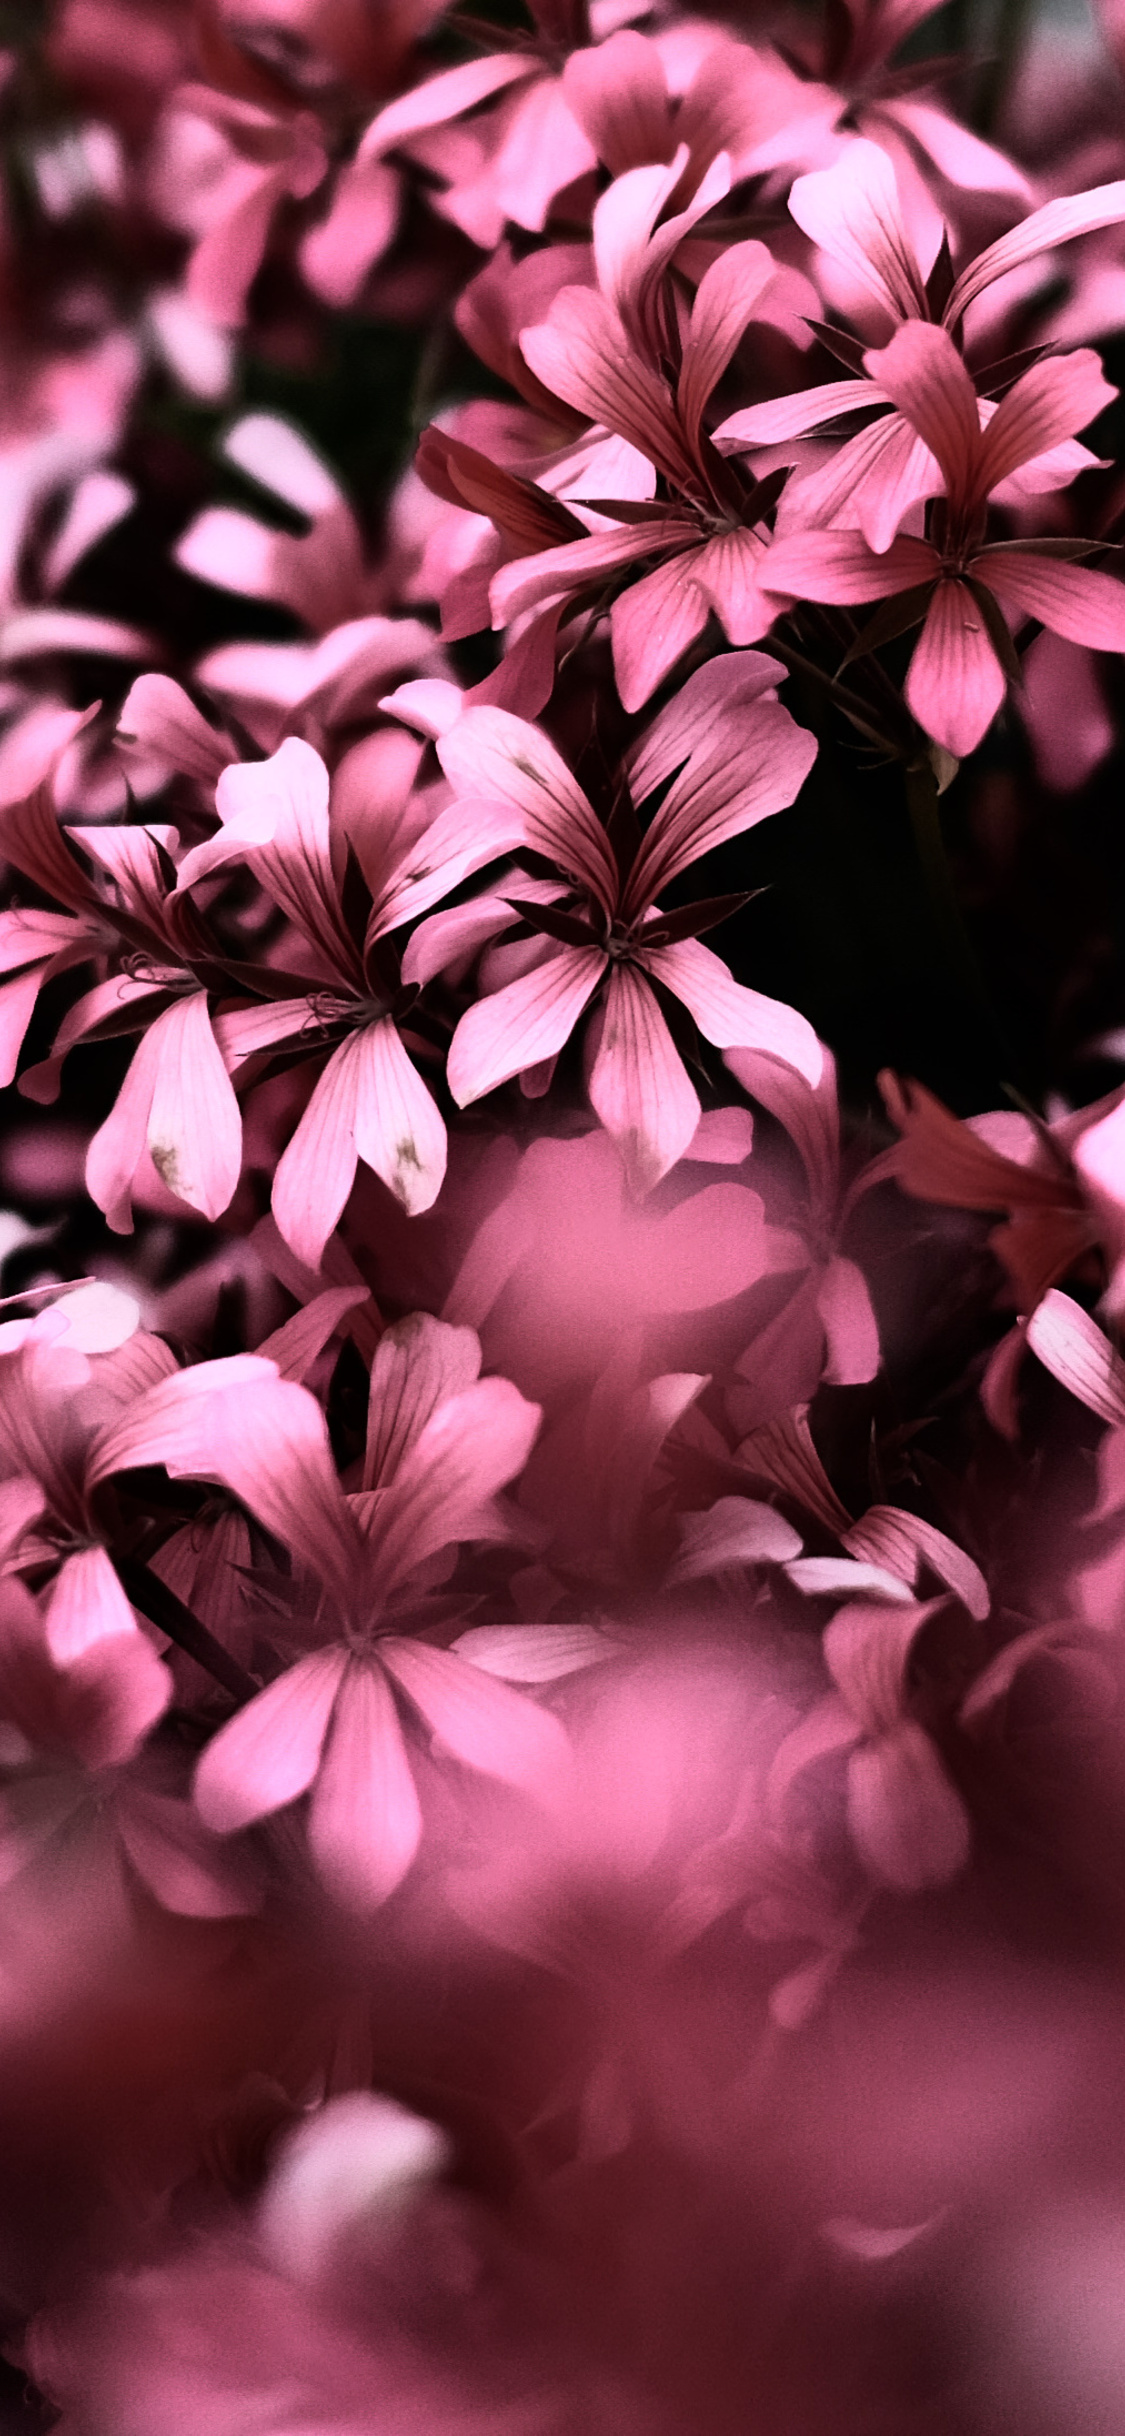 1125x2436 Pink Flowers Ultra Hd Blur 4k Iphone Xs Iphone 10 Iphone X